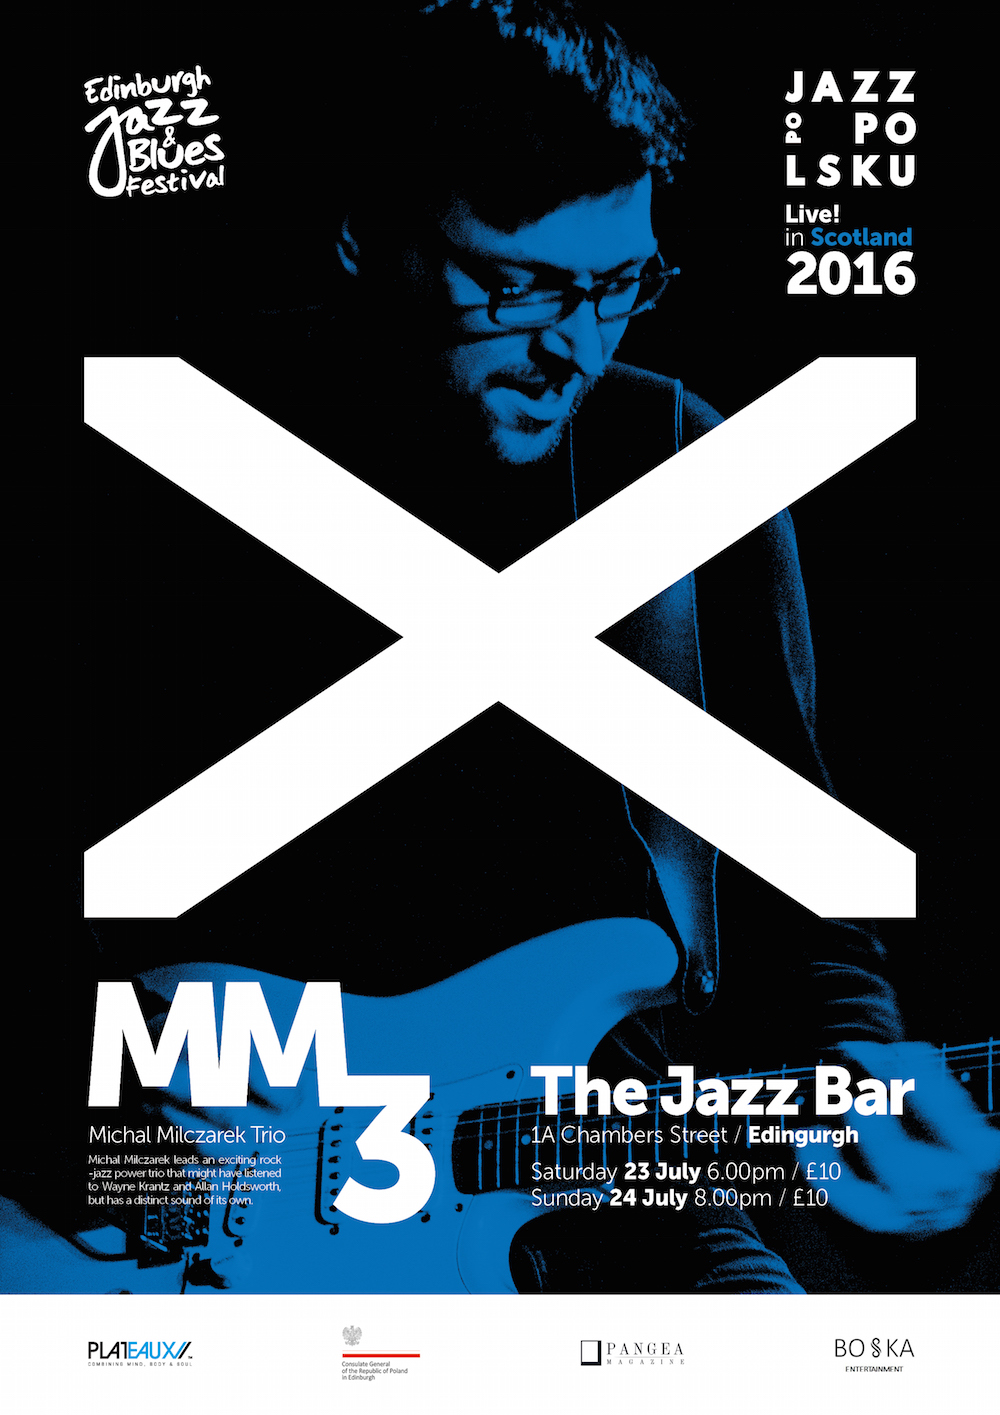 plakat_mm3_edinburgh_2016_net